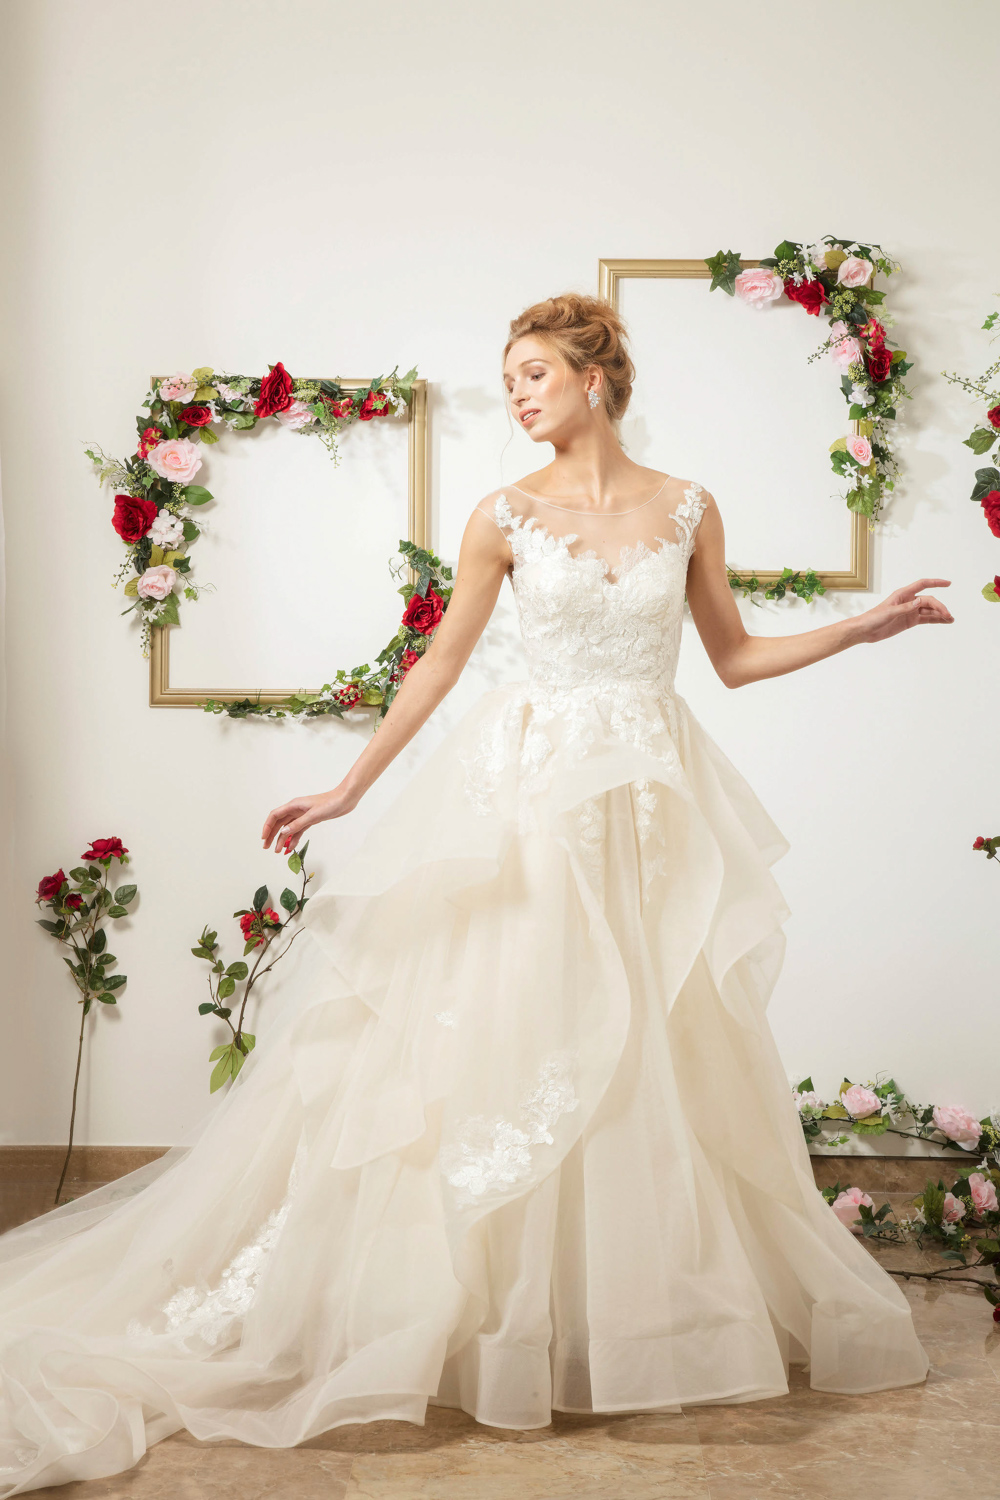 Ballgown with sweetheart neckline by CCM Wedding